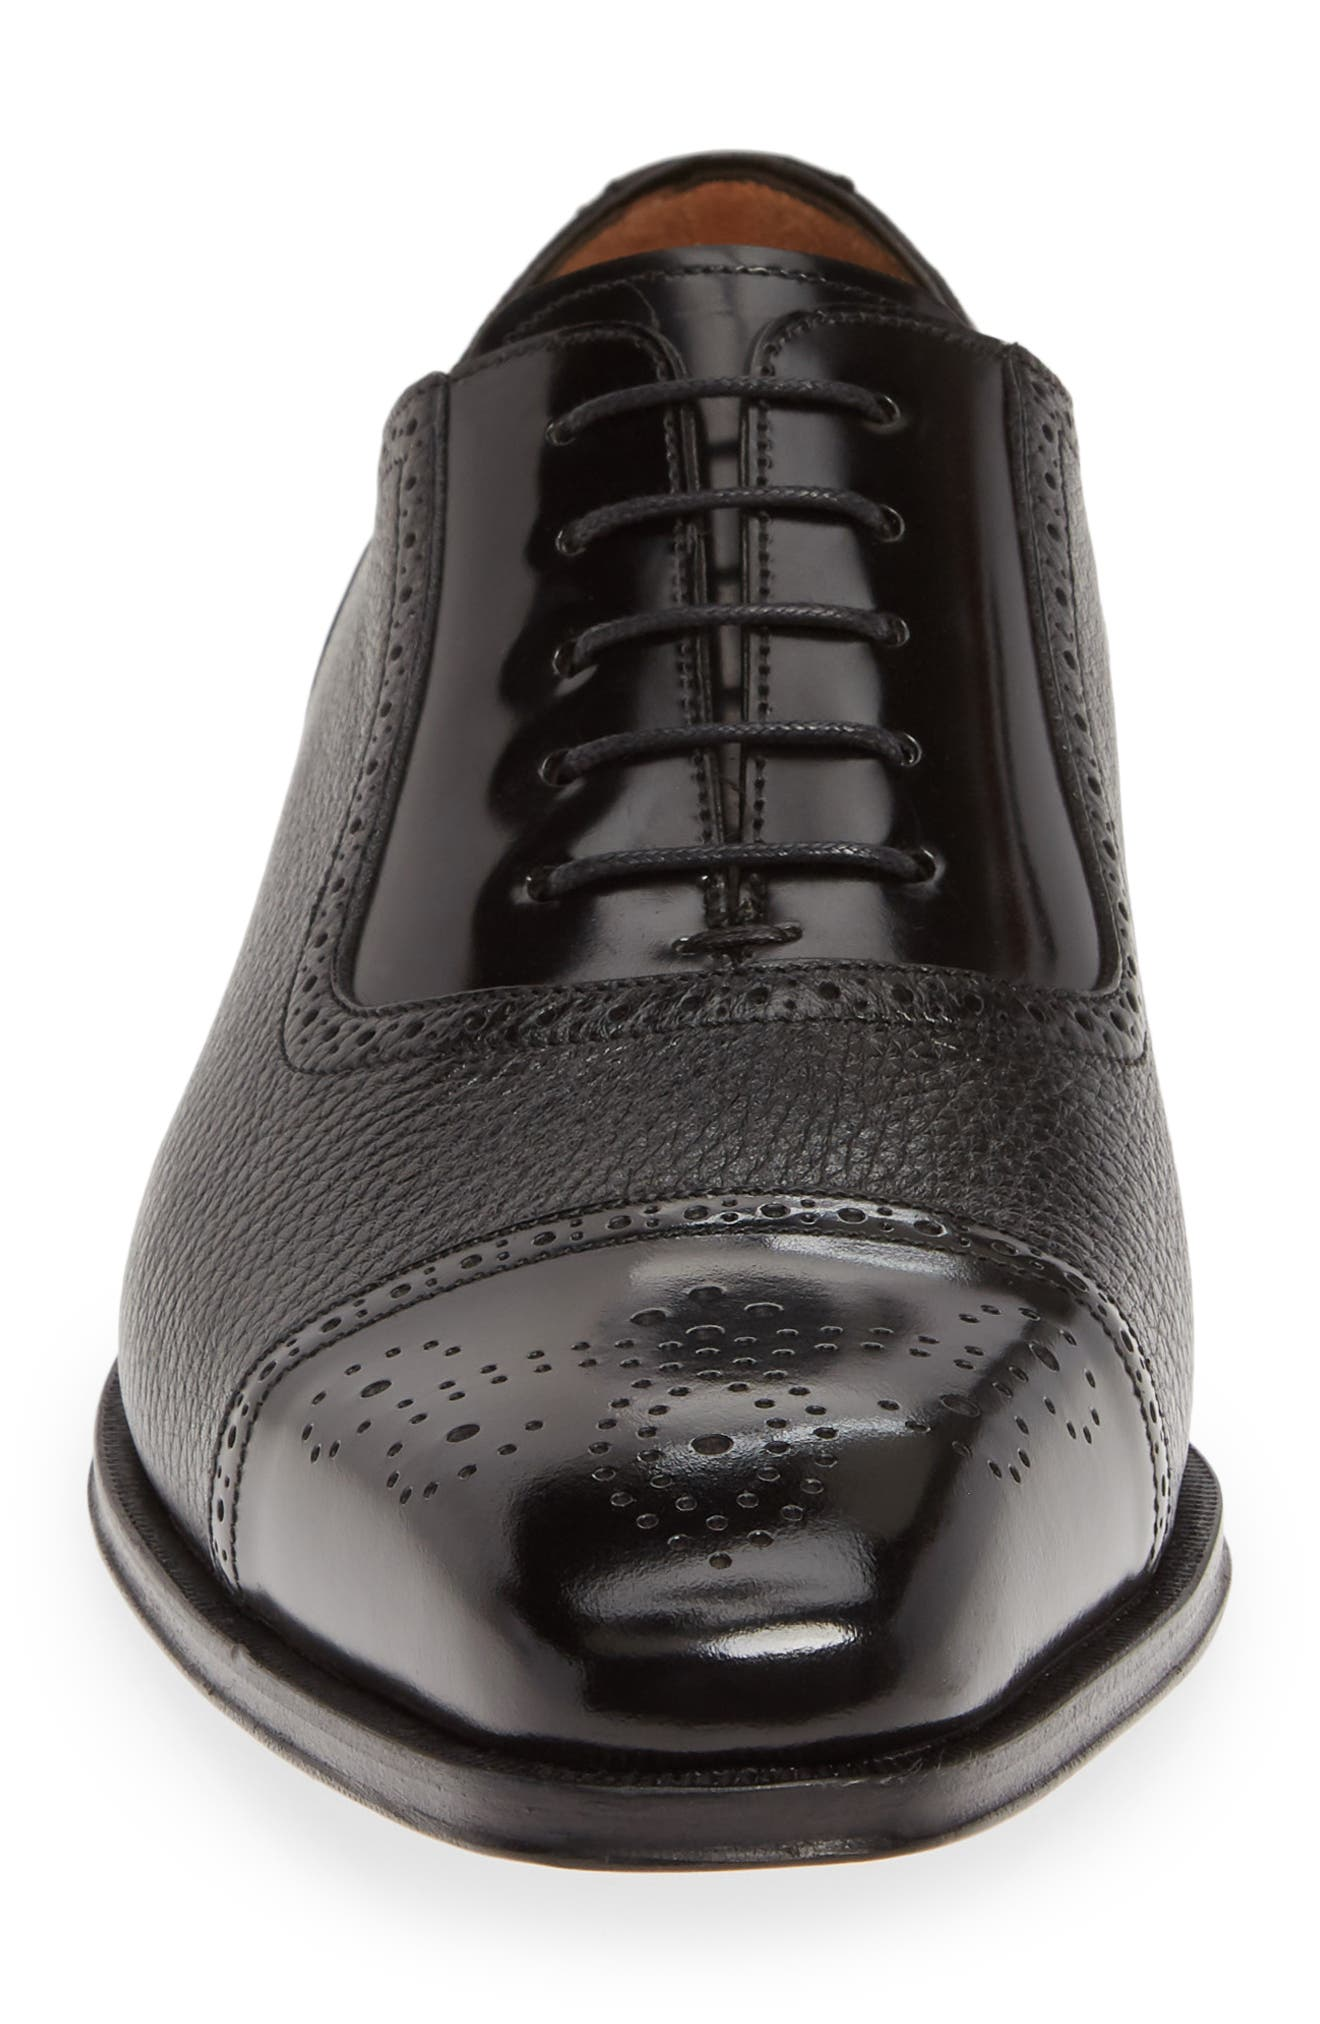 MEZLAN, Murino Medallion Toe Oxford, Alternate thumbnail 4, color, BLACK LEATHER/ DEERSKIN